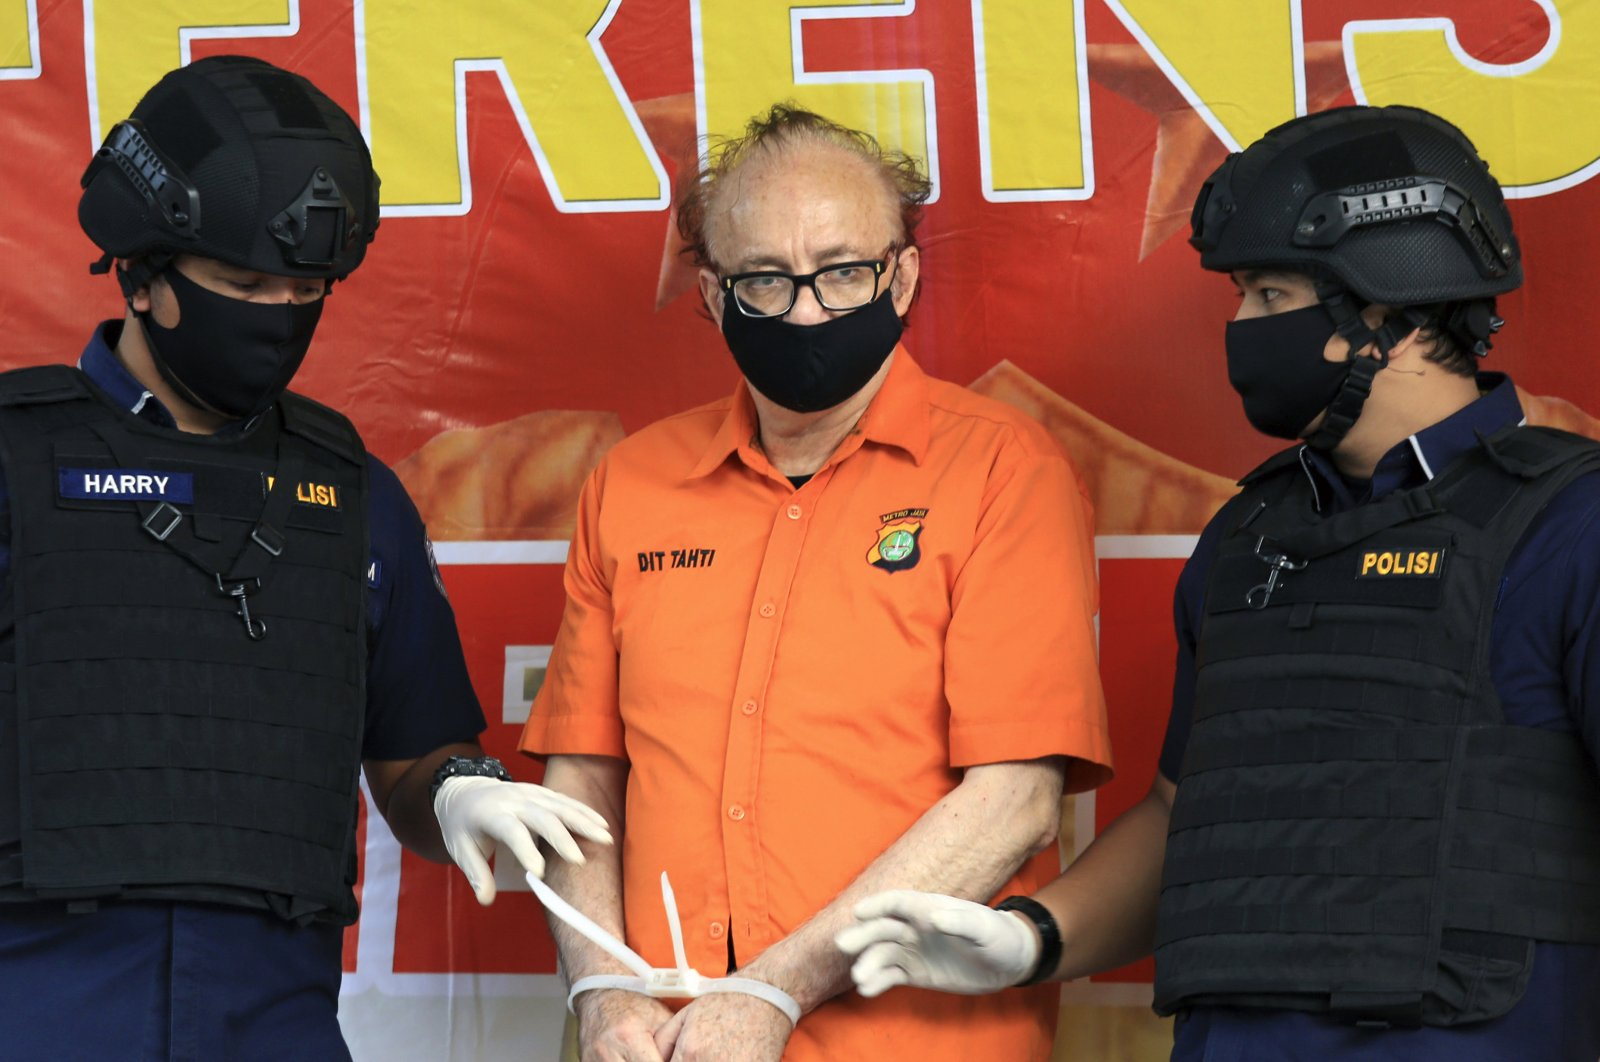 Police officers flank French national Francois Camille Abello, (C), as he is presented to the media during a press conference at the regional police headquarters in Jakarta, Indonesia, July 9, 2020. (AP Photo)